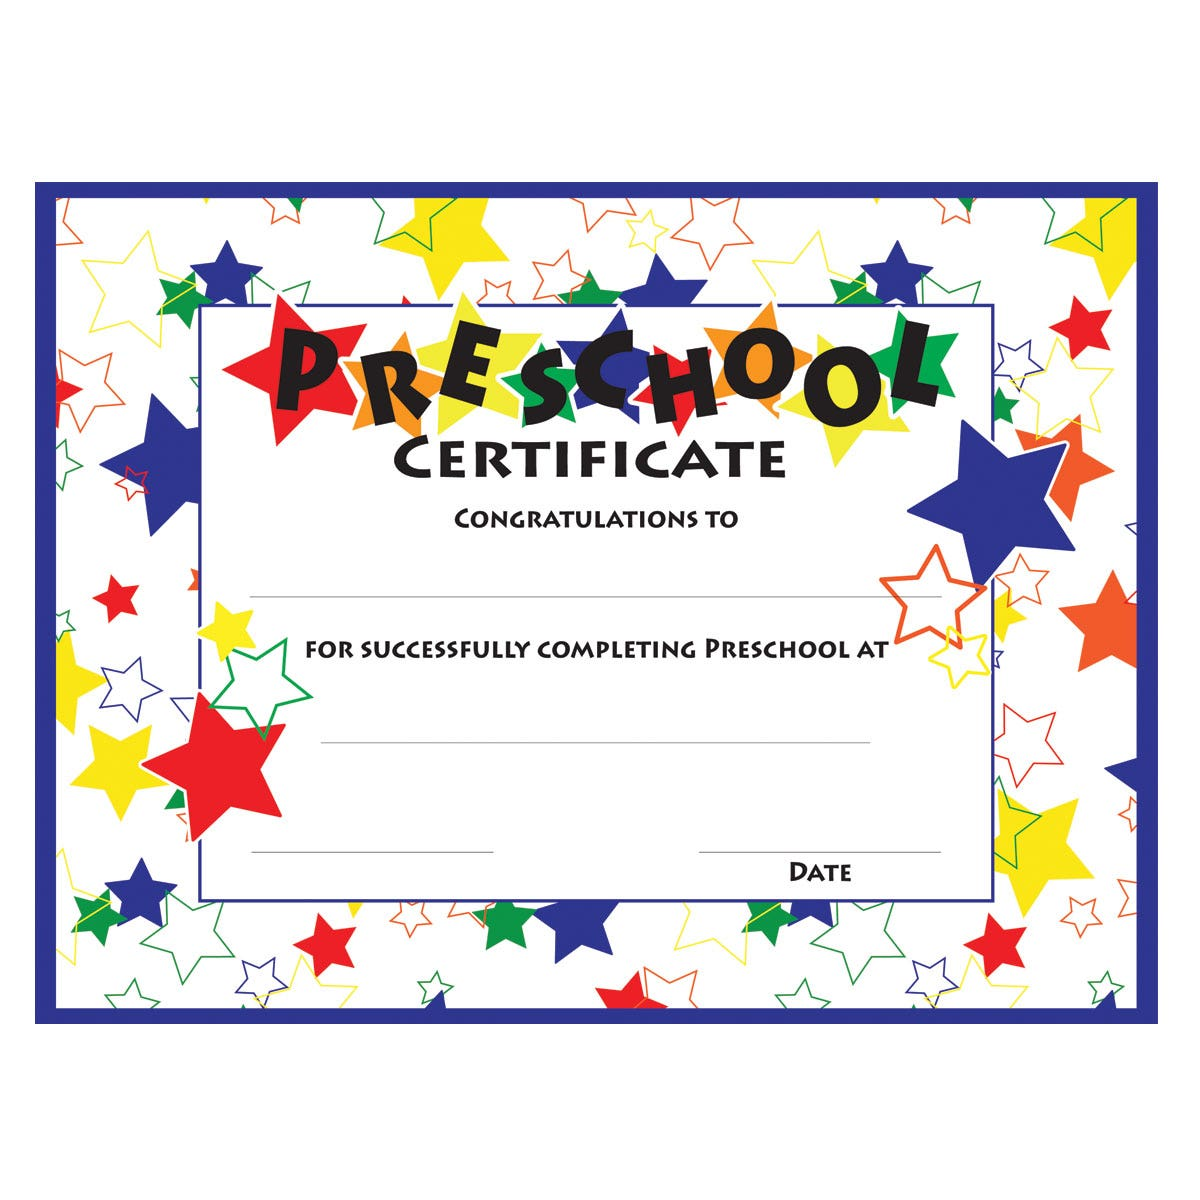 Mesmerizing image with printable preschool graduation certificates